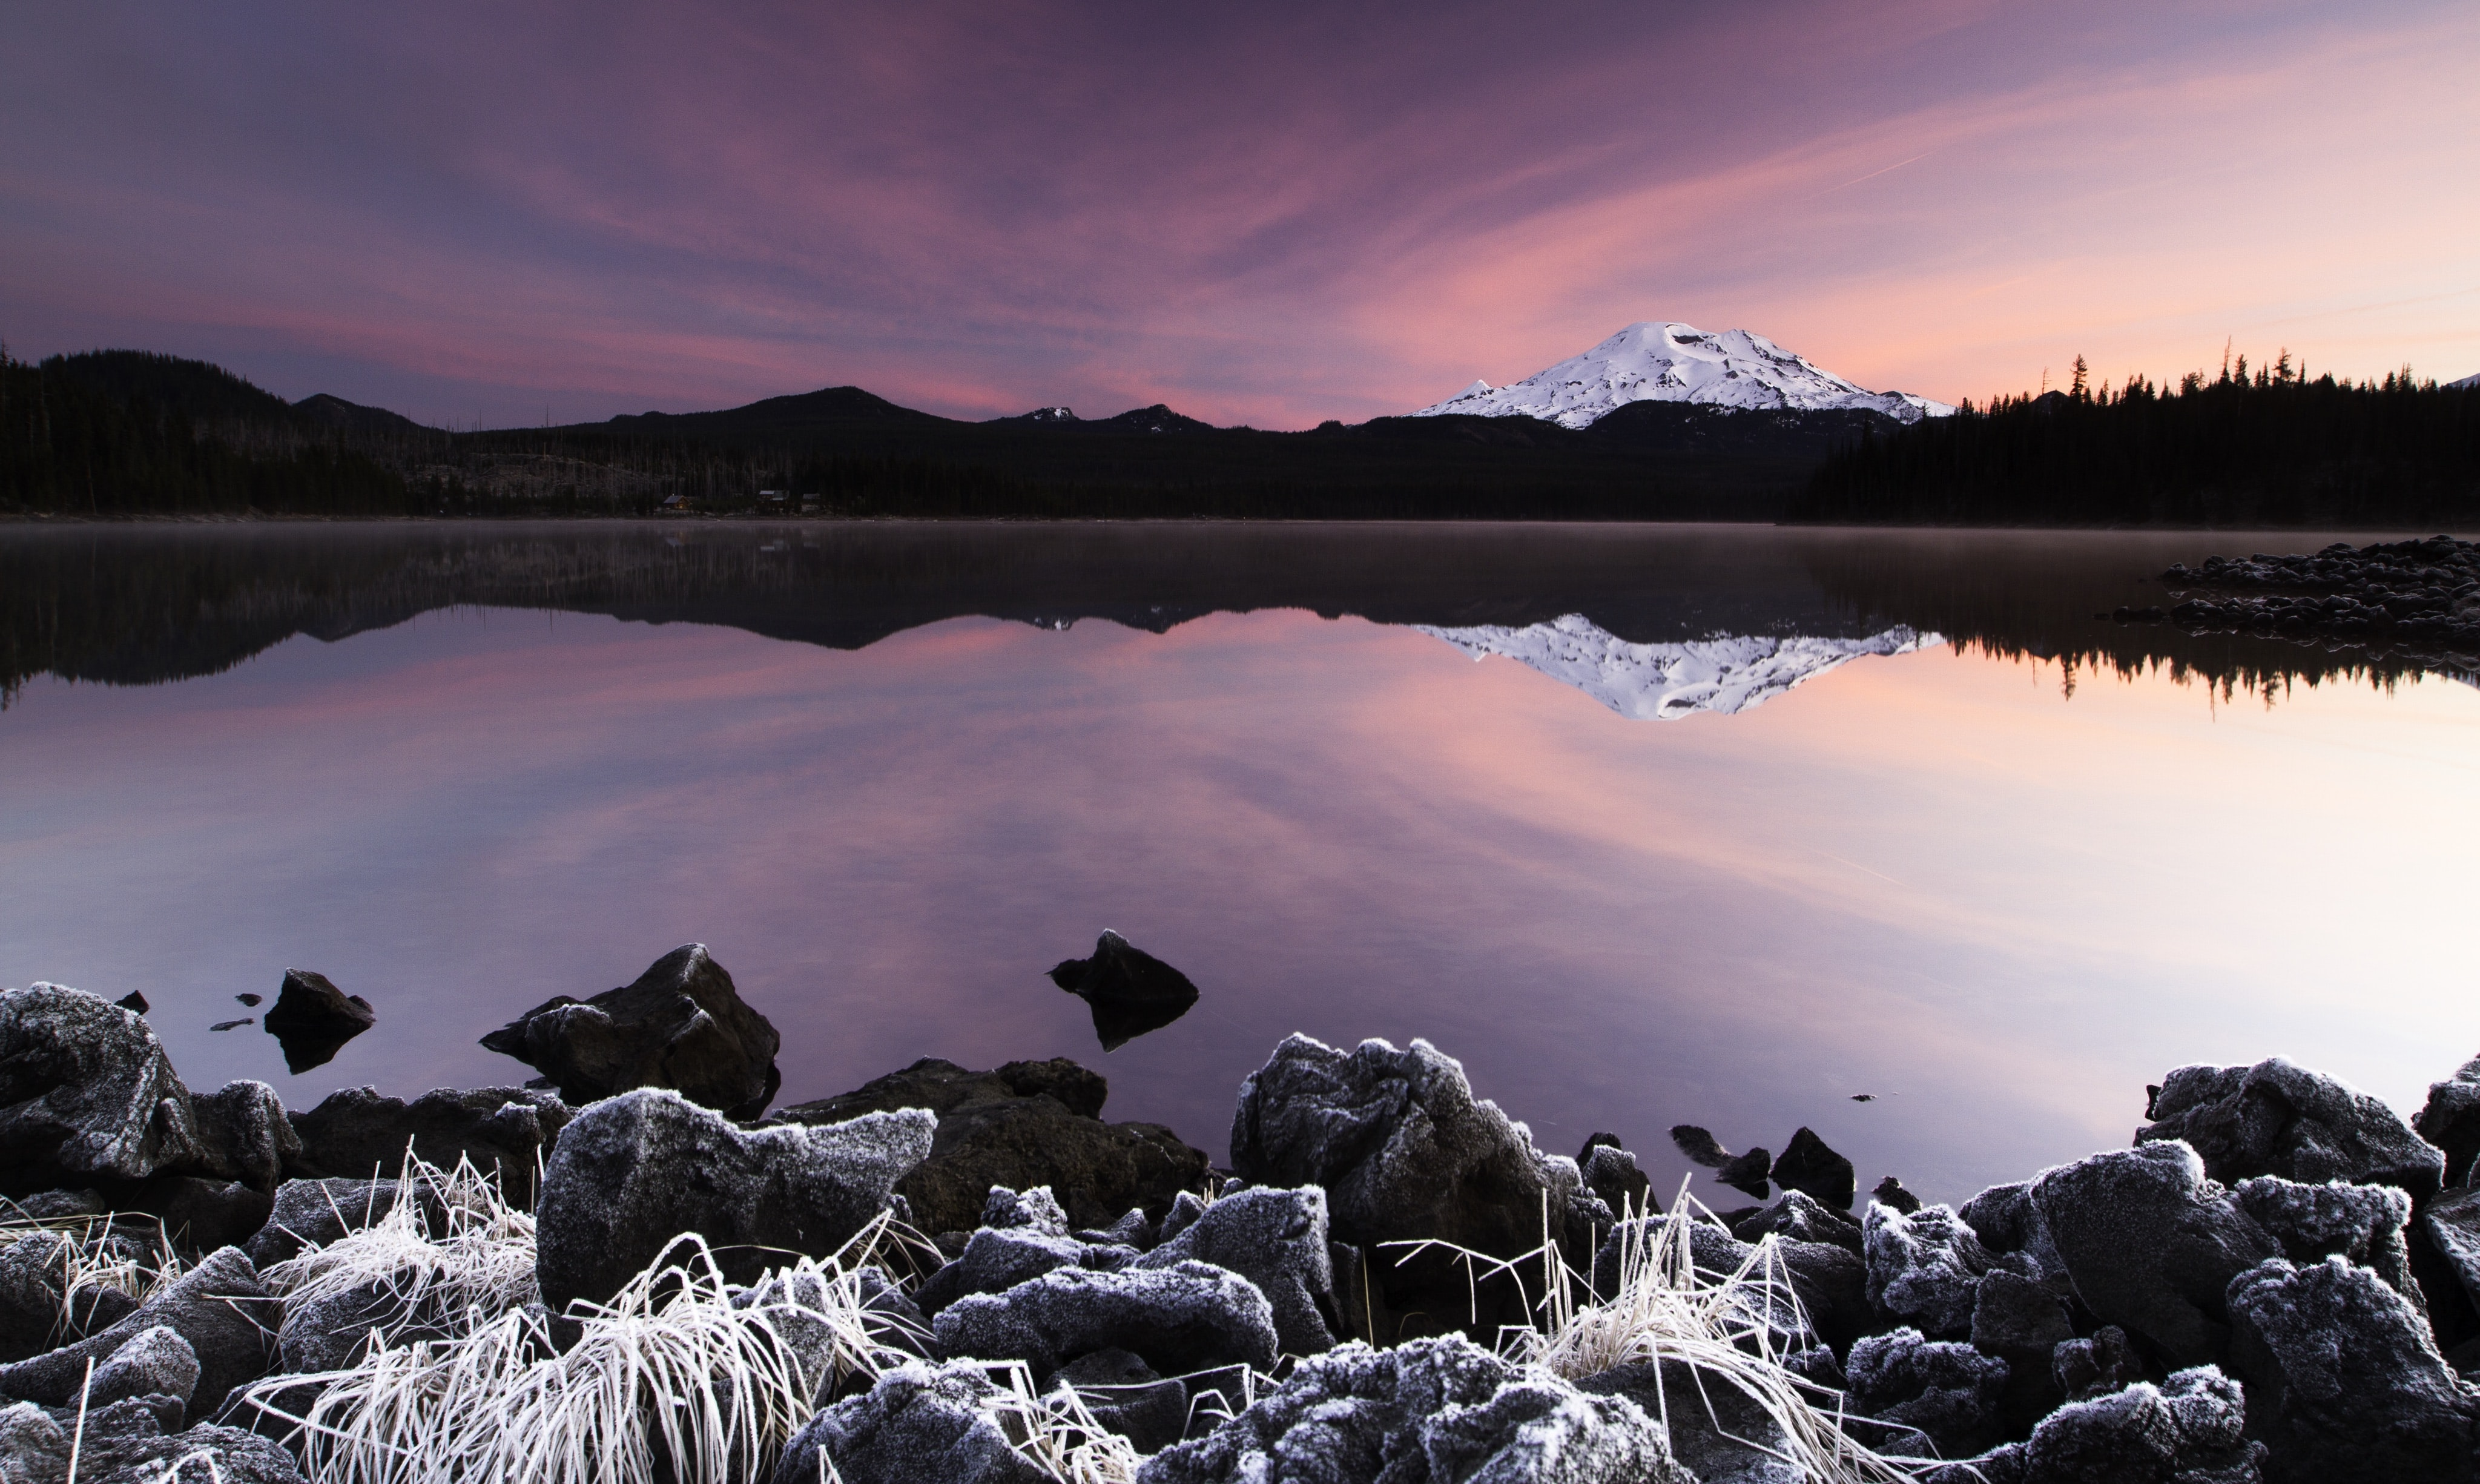 Surreal pink sky reflects in still waters near a mountain landscape